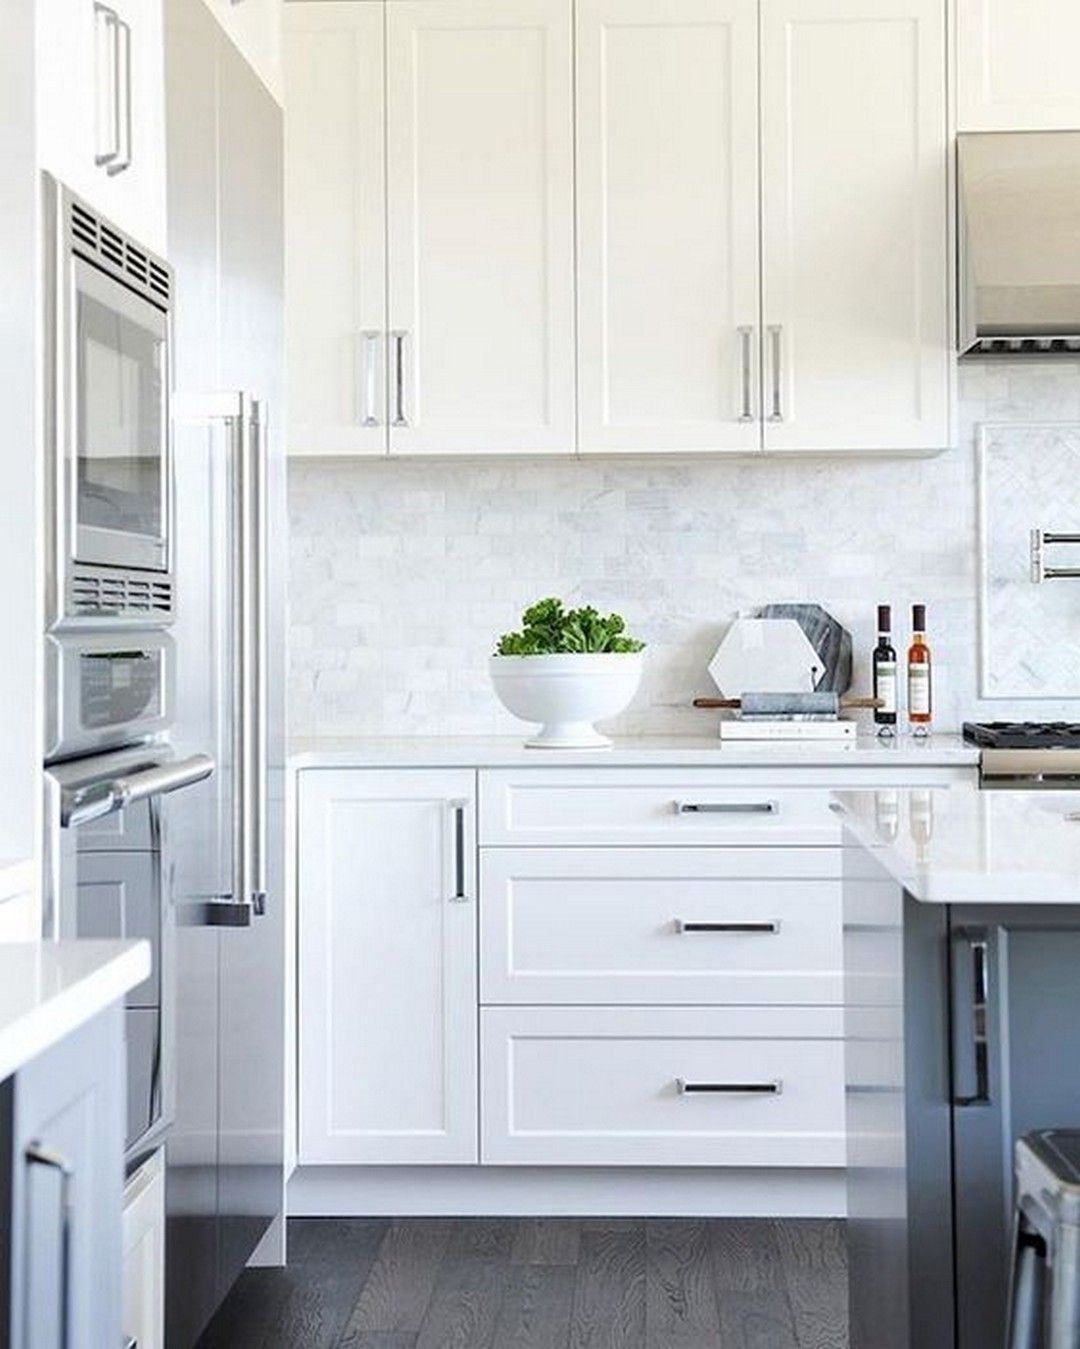 Kitchen Cabinets Decorating To Organize Your Kitchen Abchomedecor Modern White Kitchen Cabinets Minimalist Kitchen Cabinets White Modern Kitchen